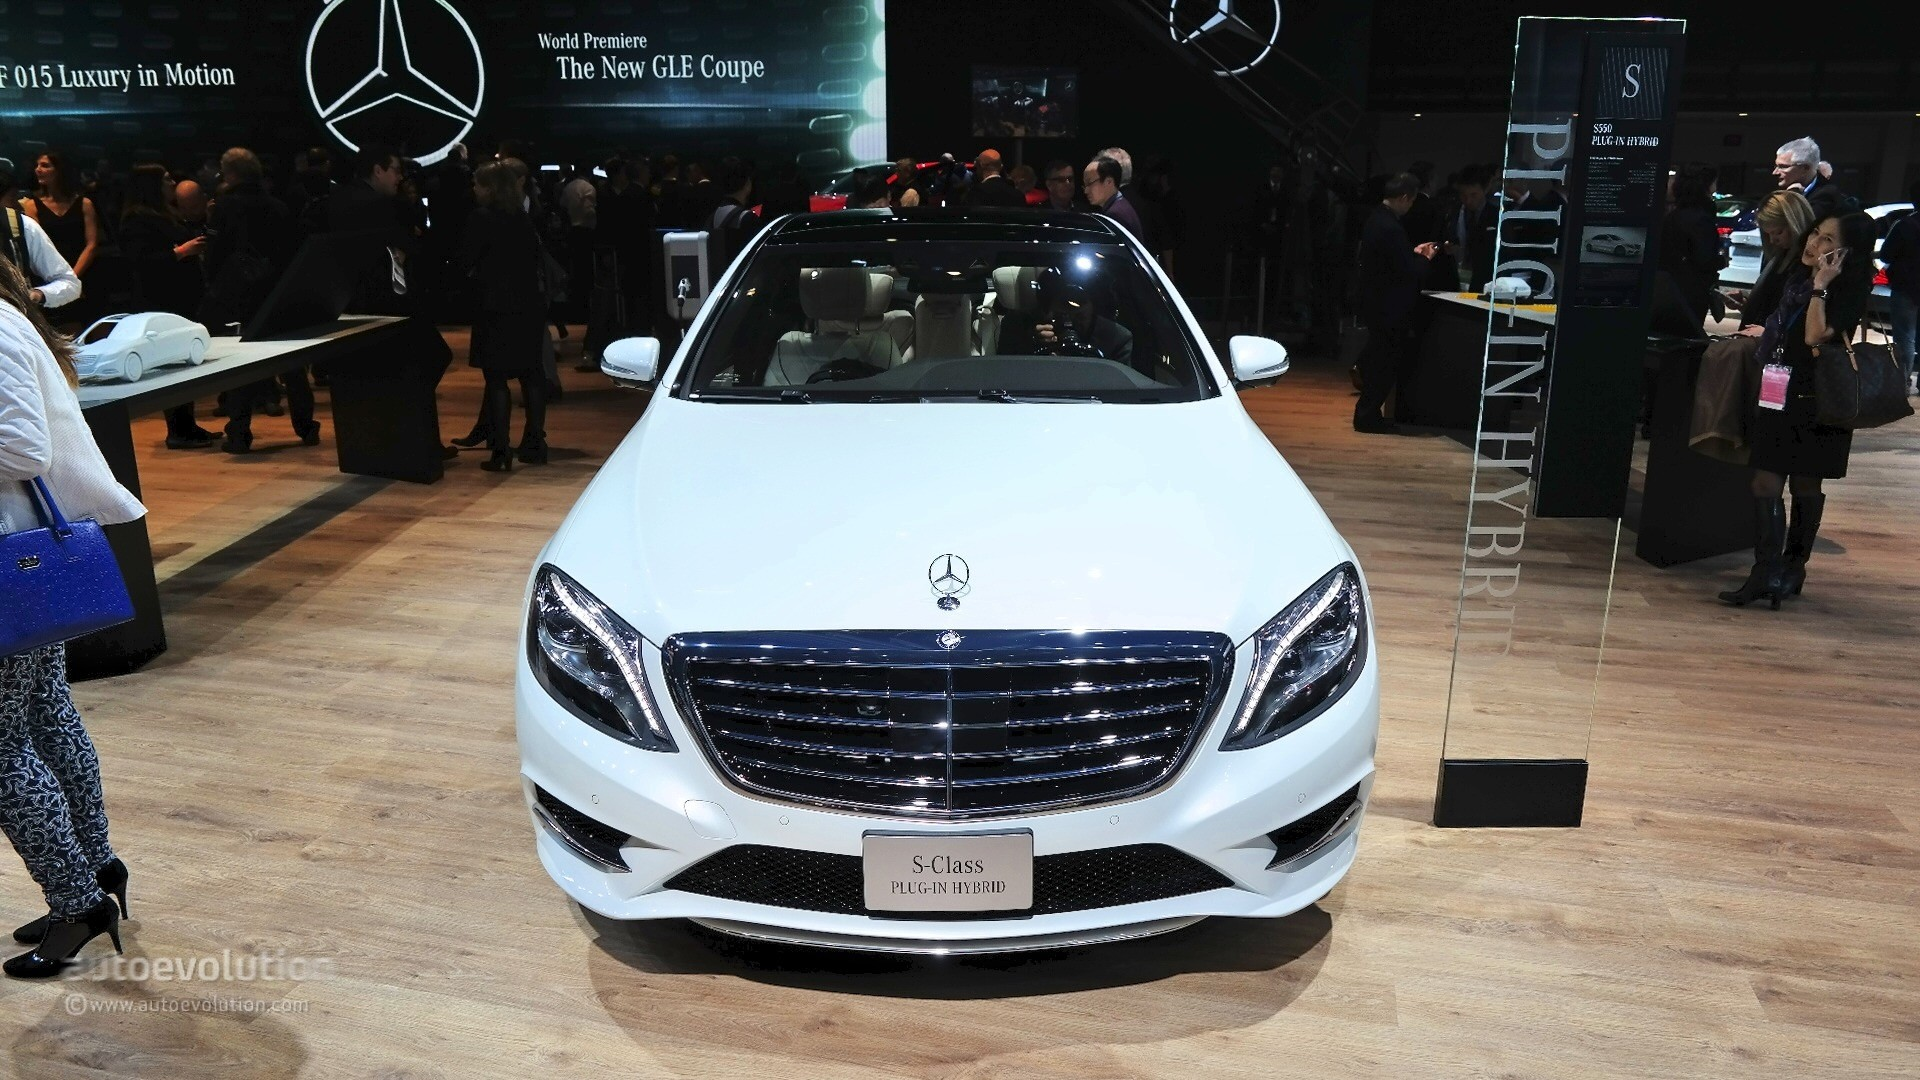 2015 mercedes benz s550 plug in hybrid silently introduced at the detroit auto show live photos autoevolution - S550 Plug In Hybrid